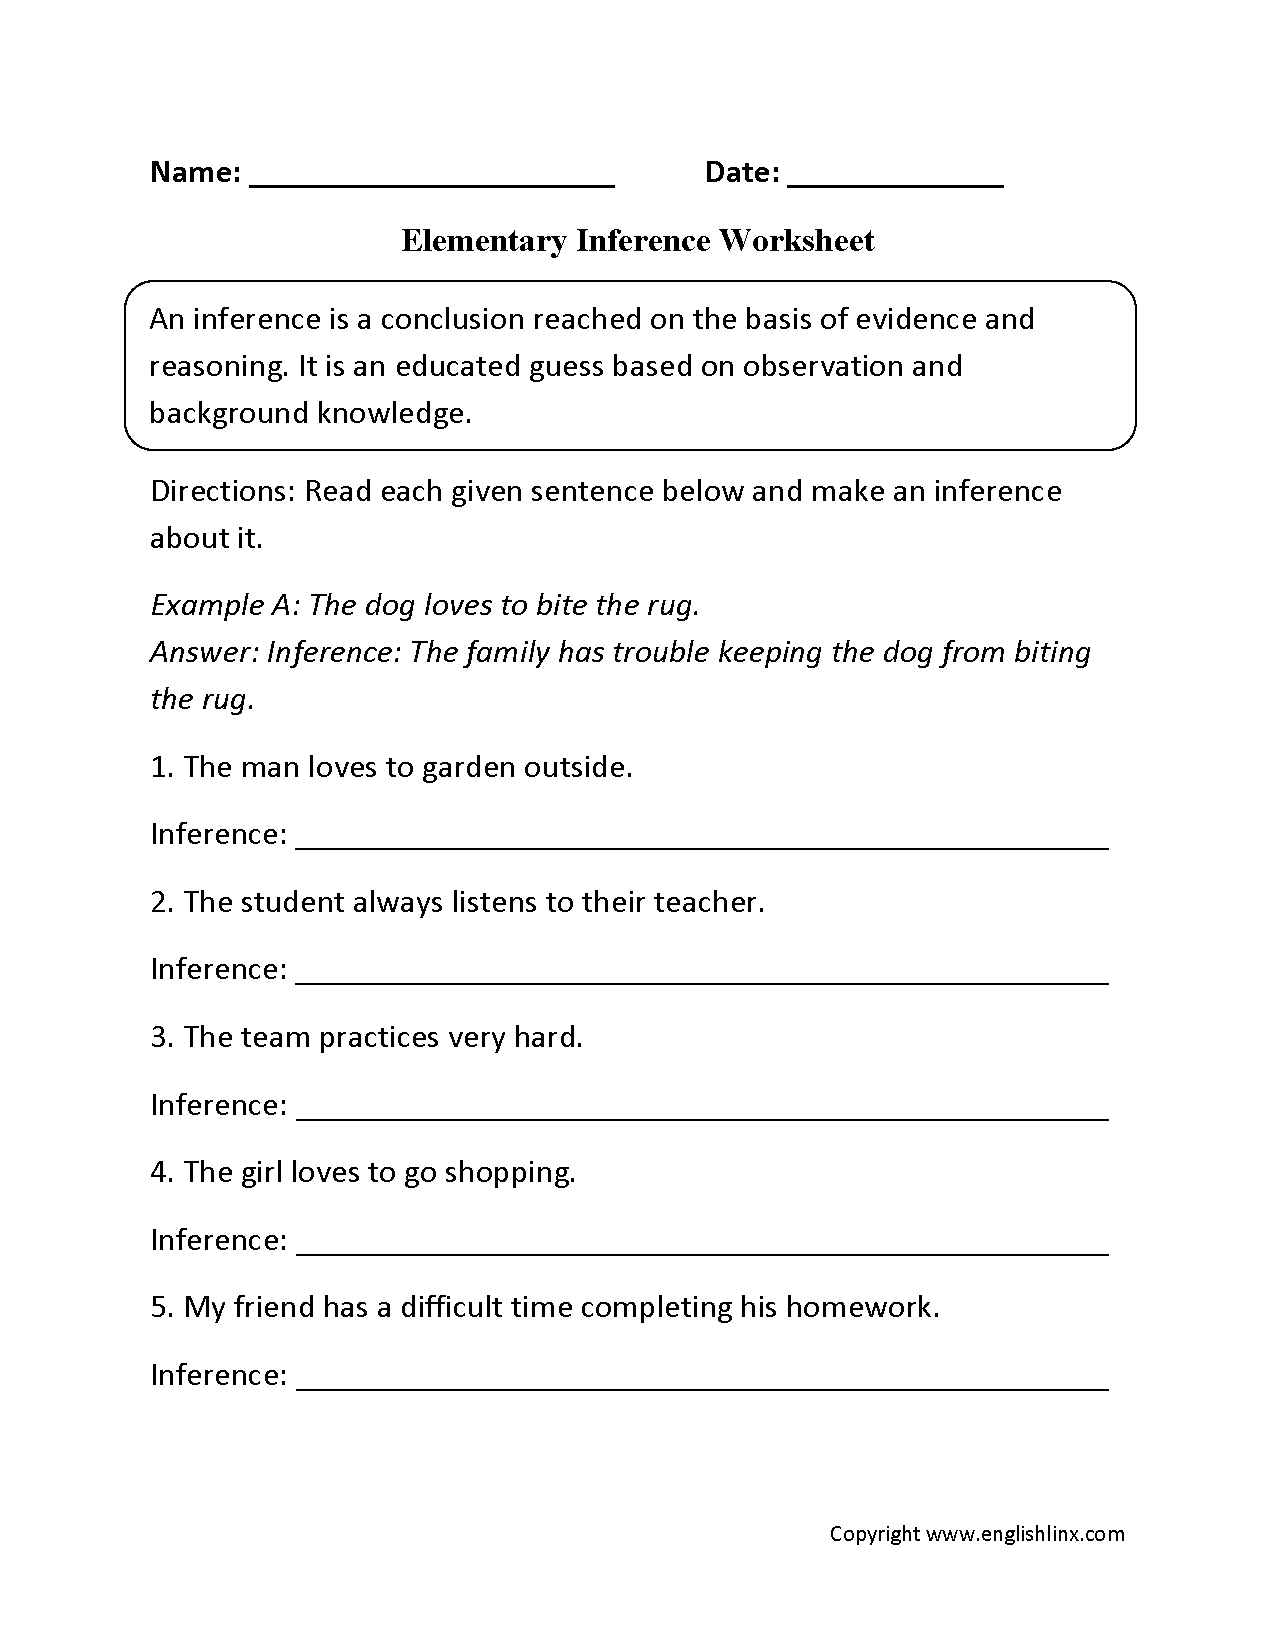 Inference Worksheet For 4th Grade